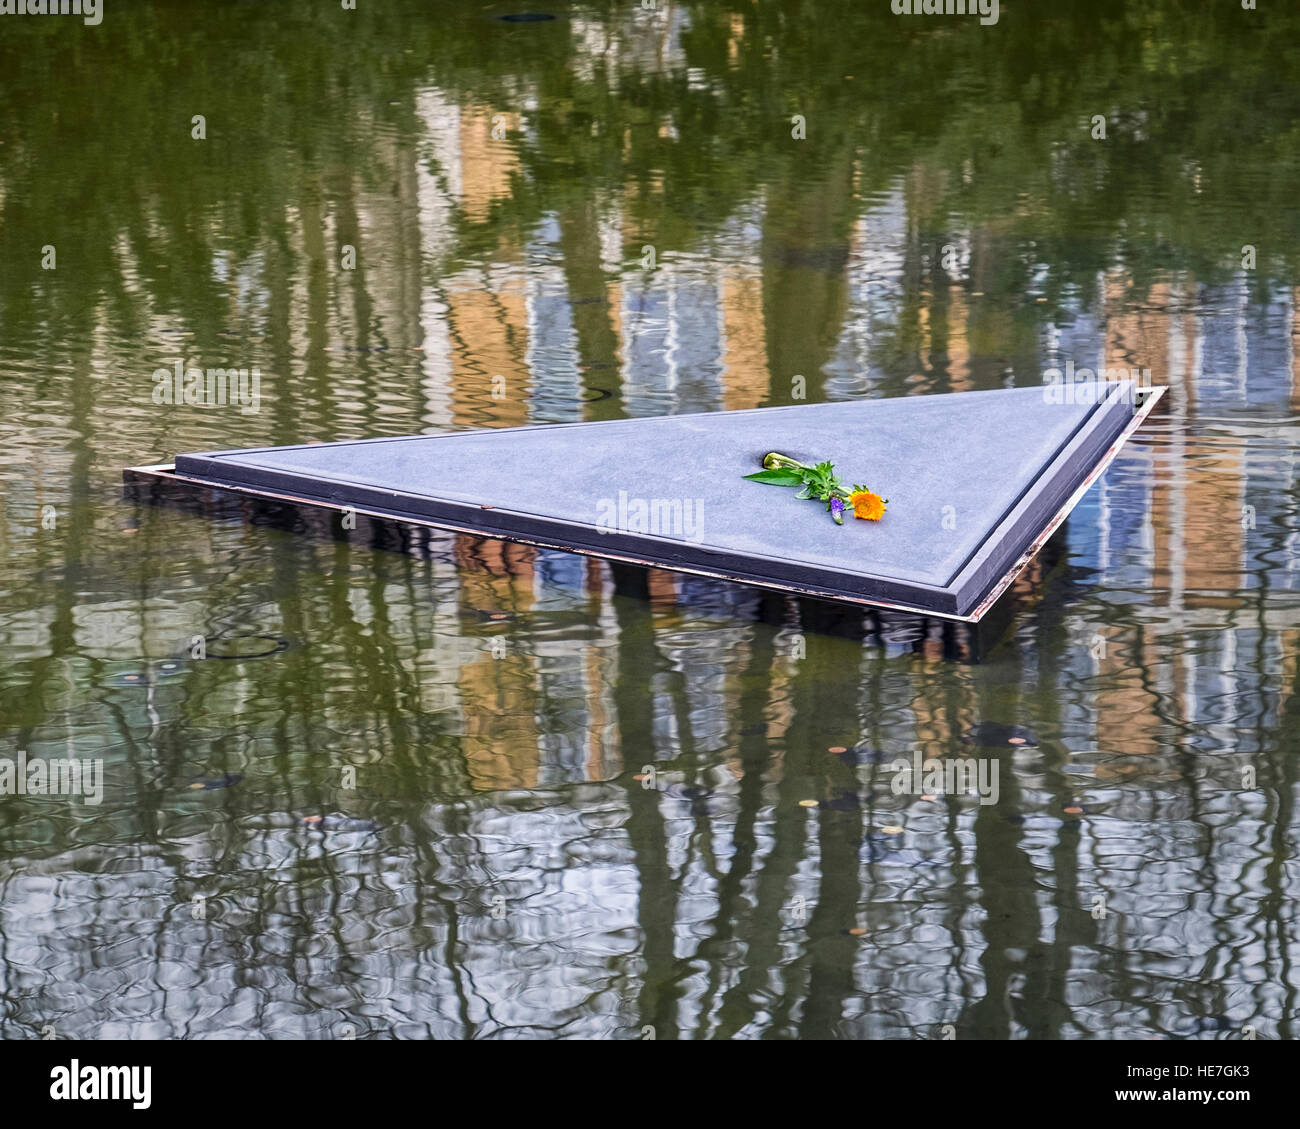 Berlin, Pond of Memorial to the Sinti and Roma people of Europe murdered under National Socialism Stock Photo